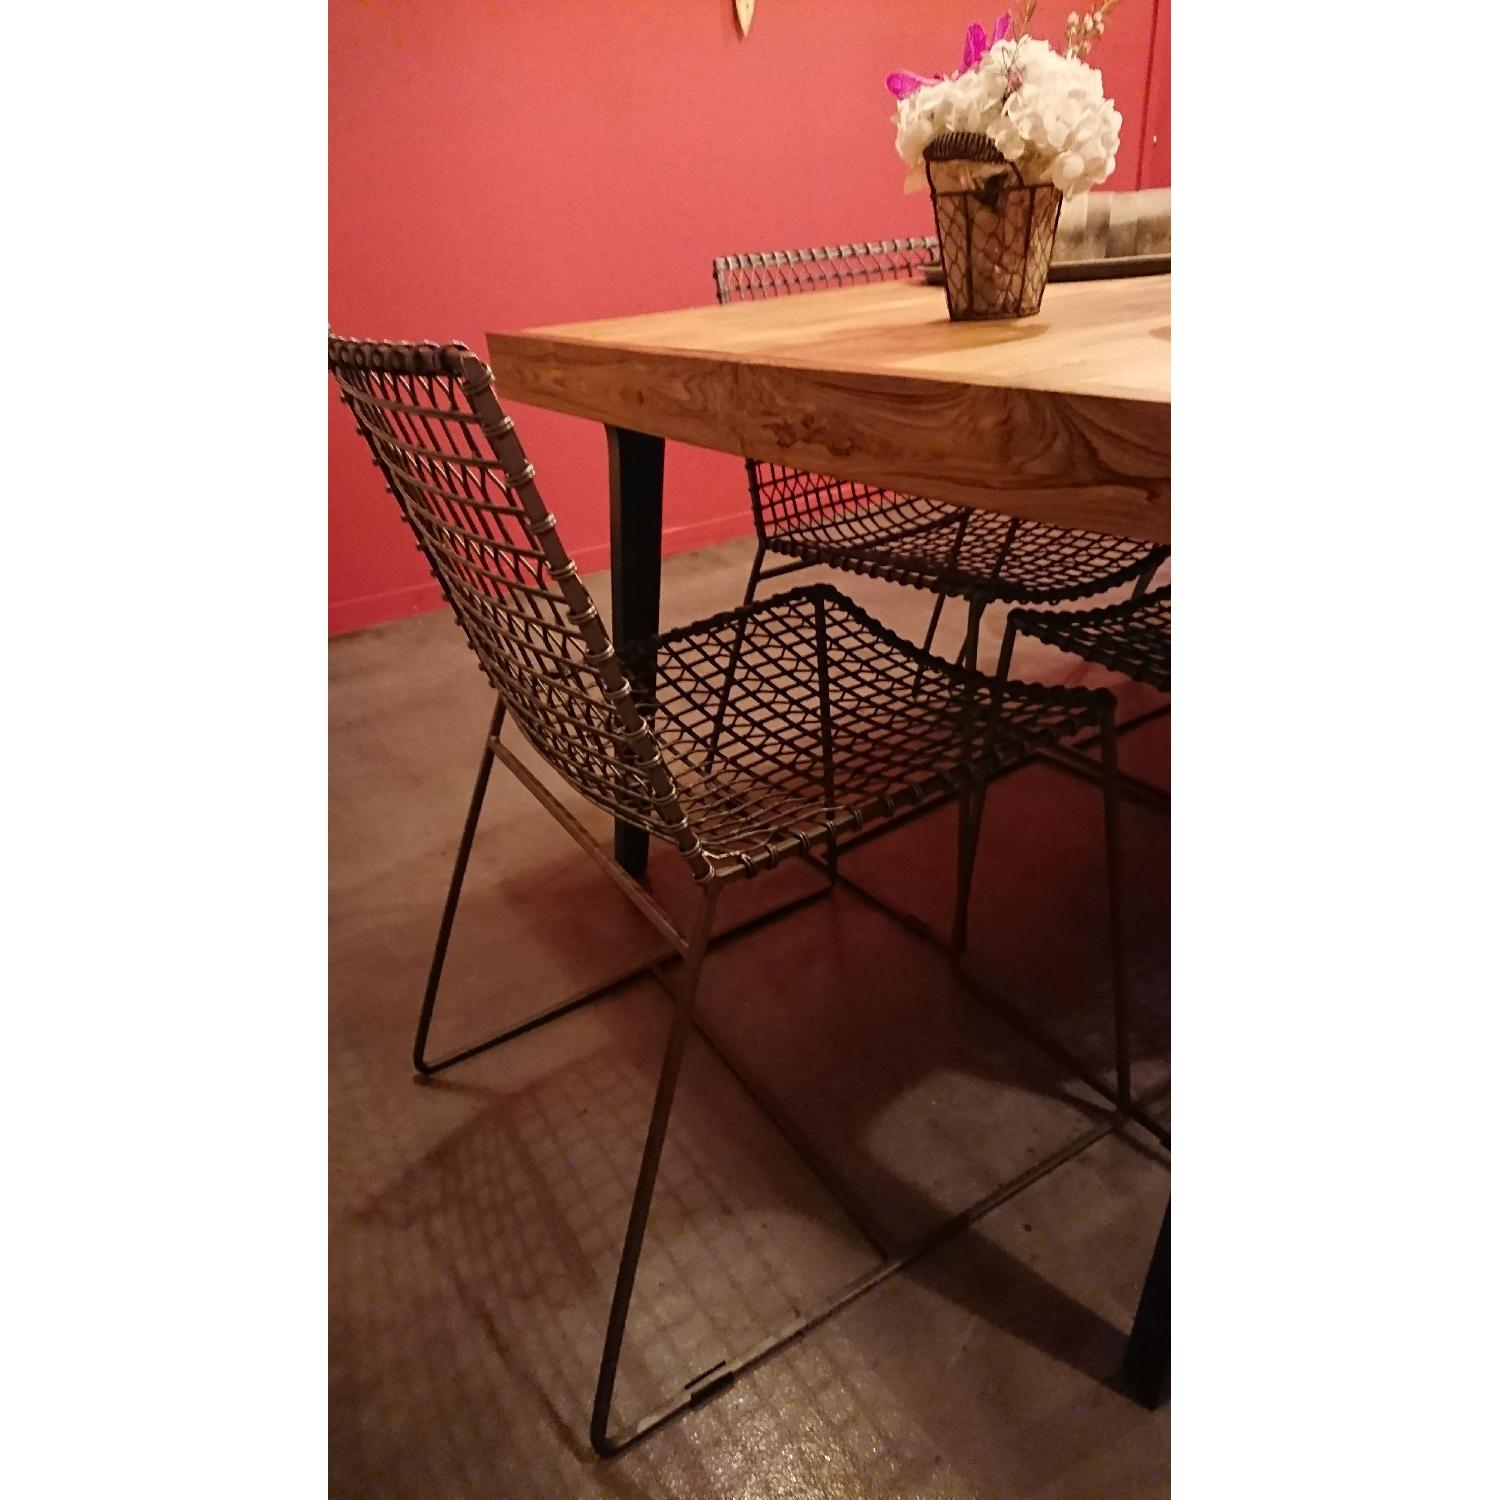 Crate & Barrel Tig Metal Dining Chairs - image-2